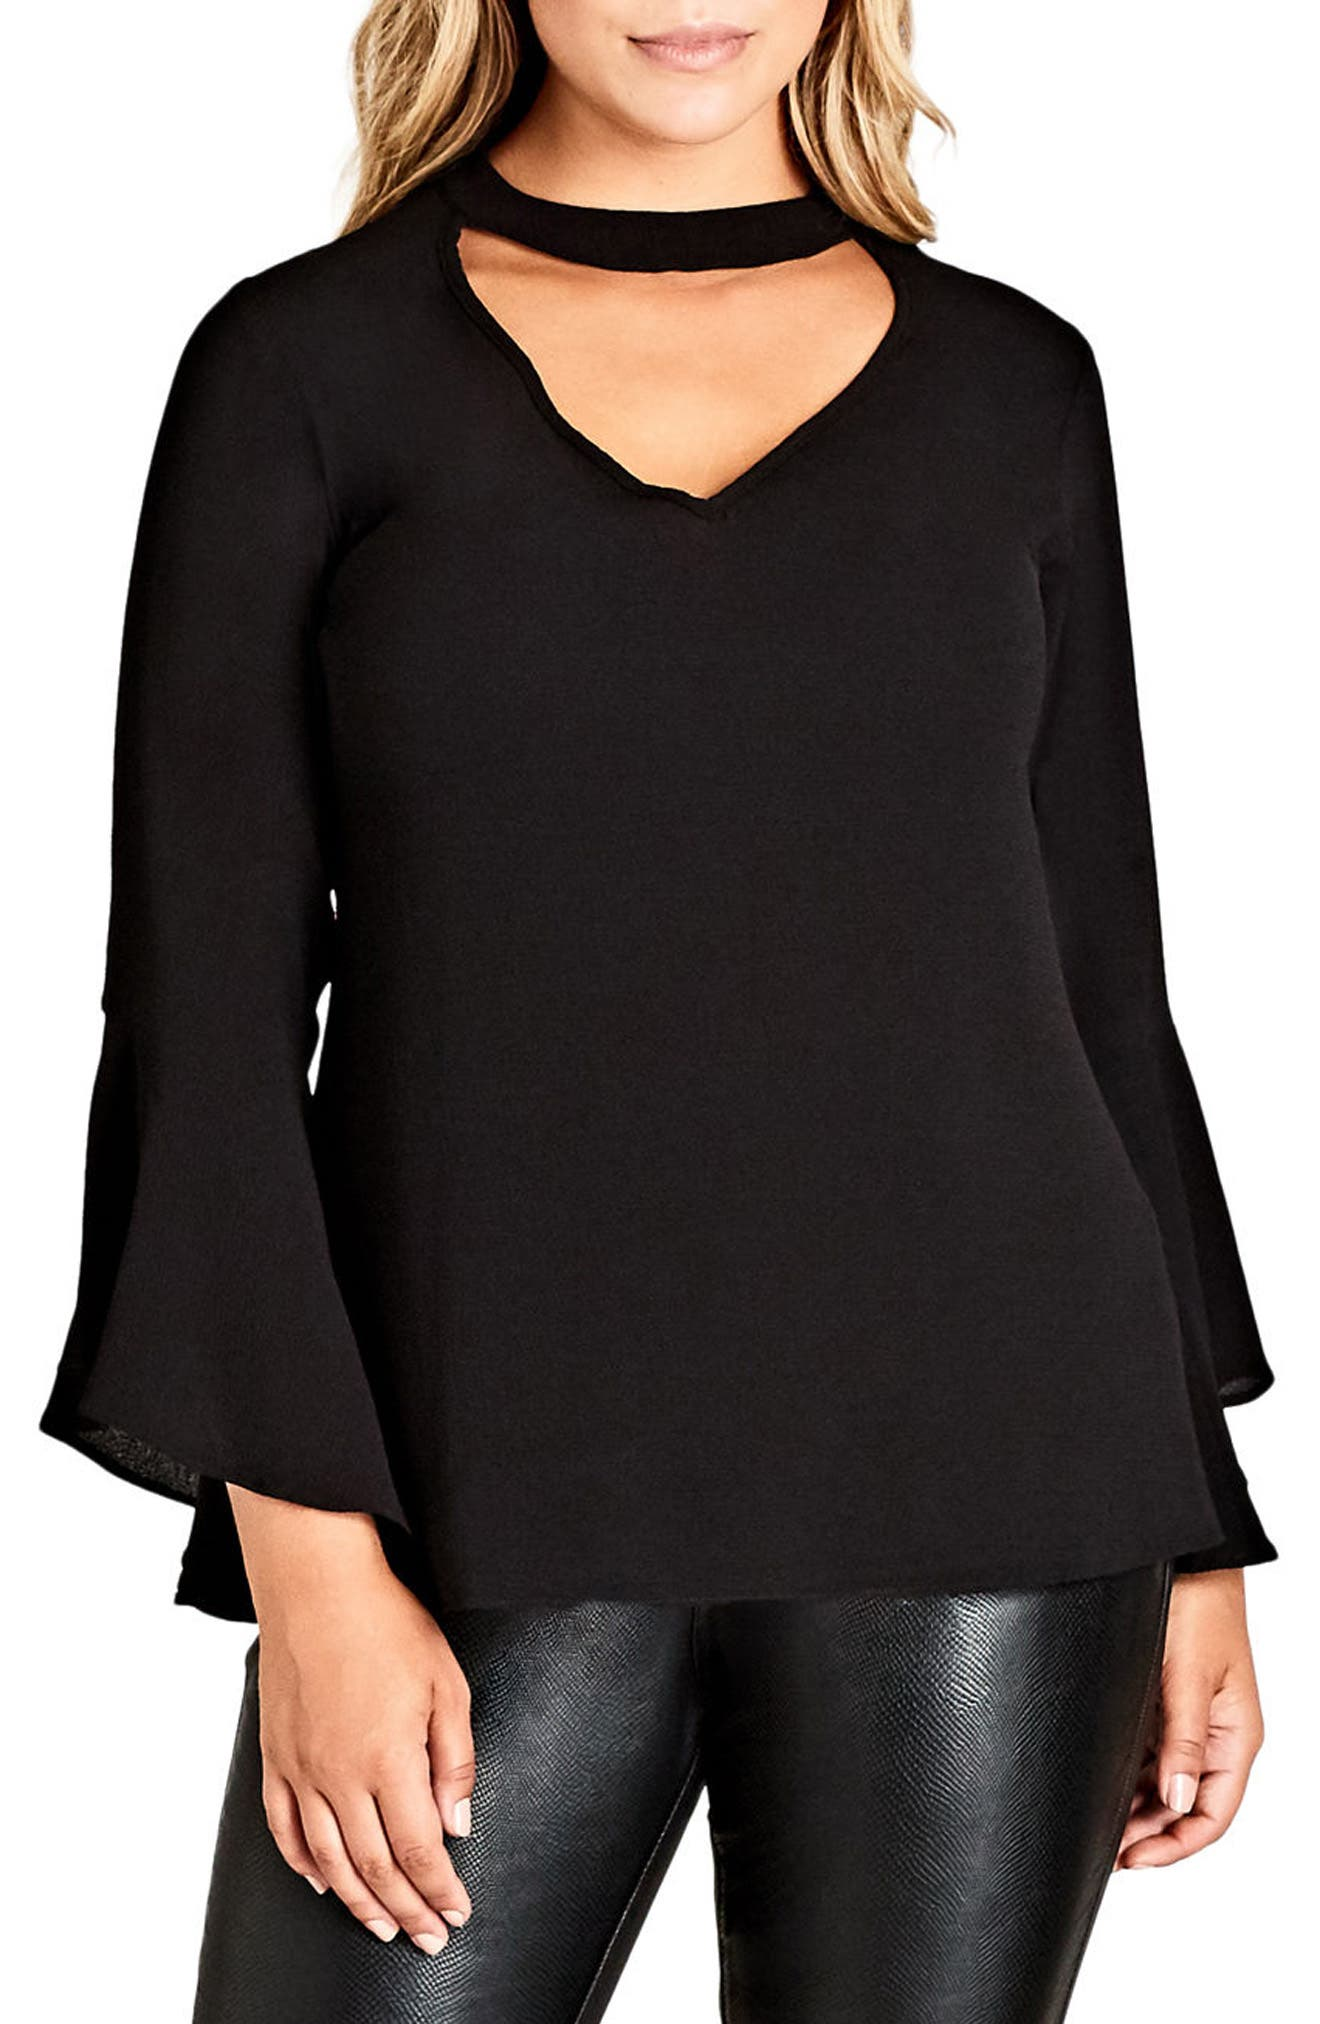 Alternate Image 1 Selected - City Chic Shadow Choker Shirt (Plus Size)